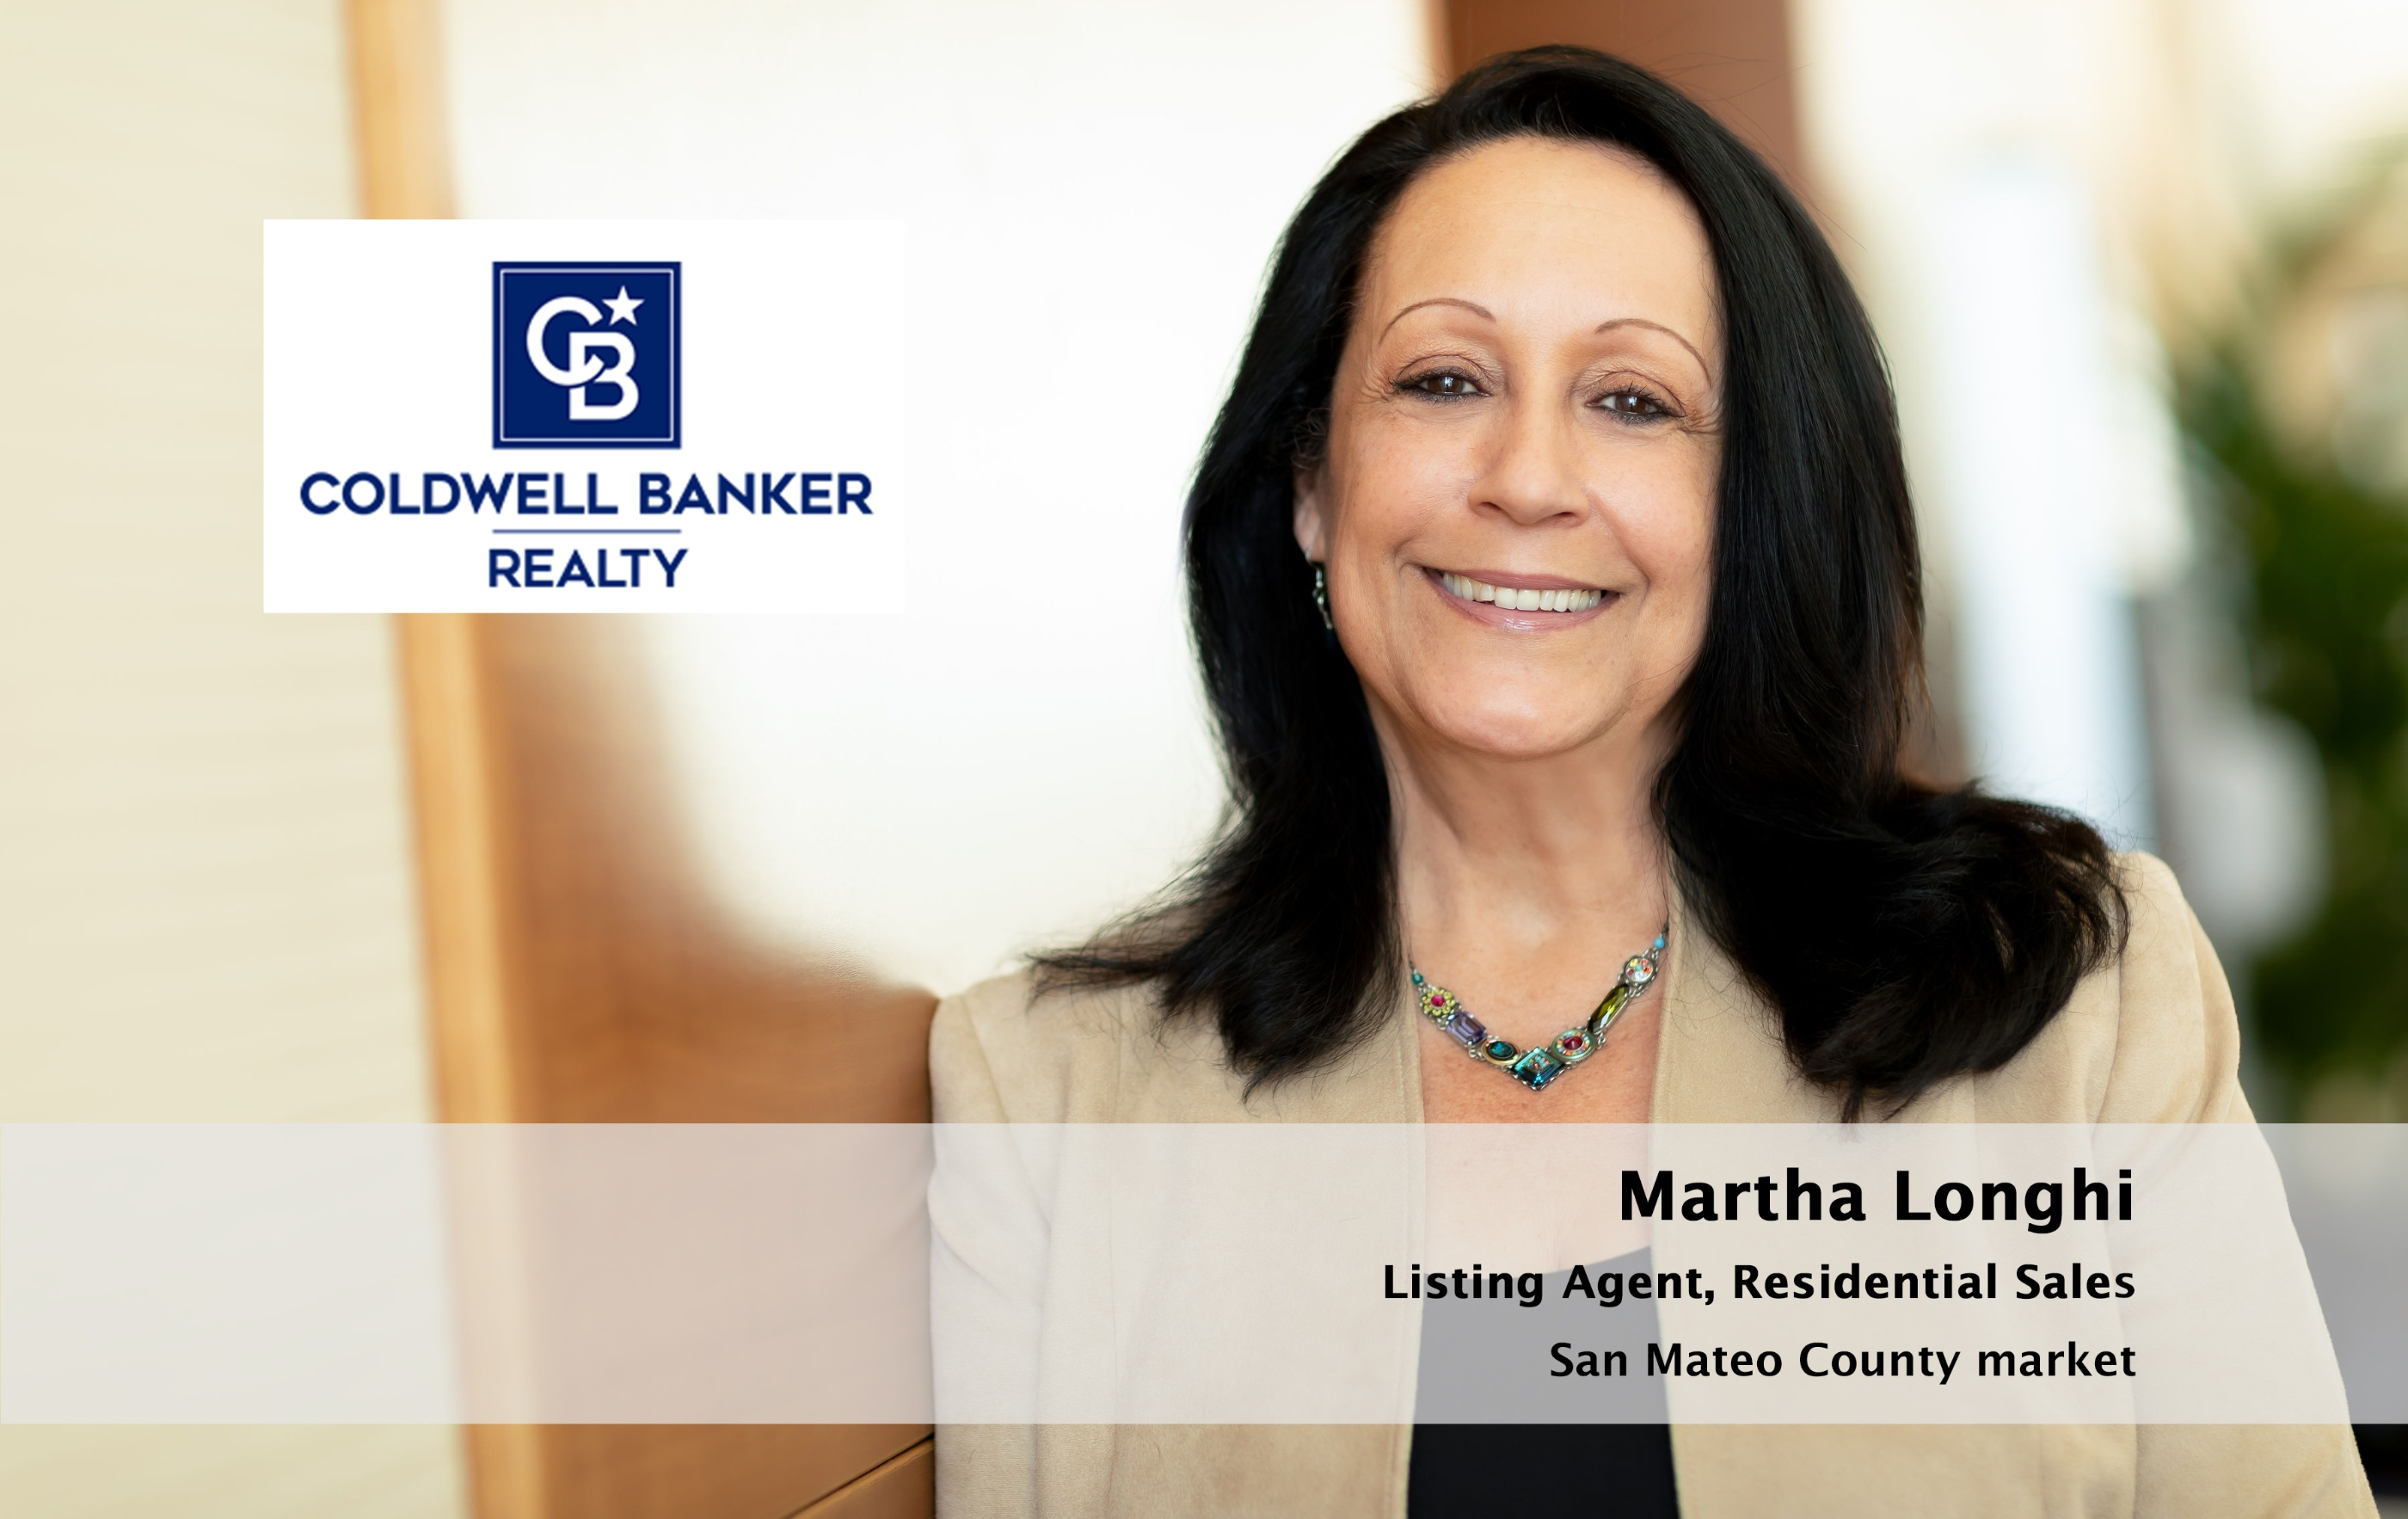 martha longhi listing agent, san francisco bay area